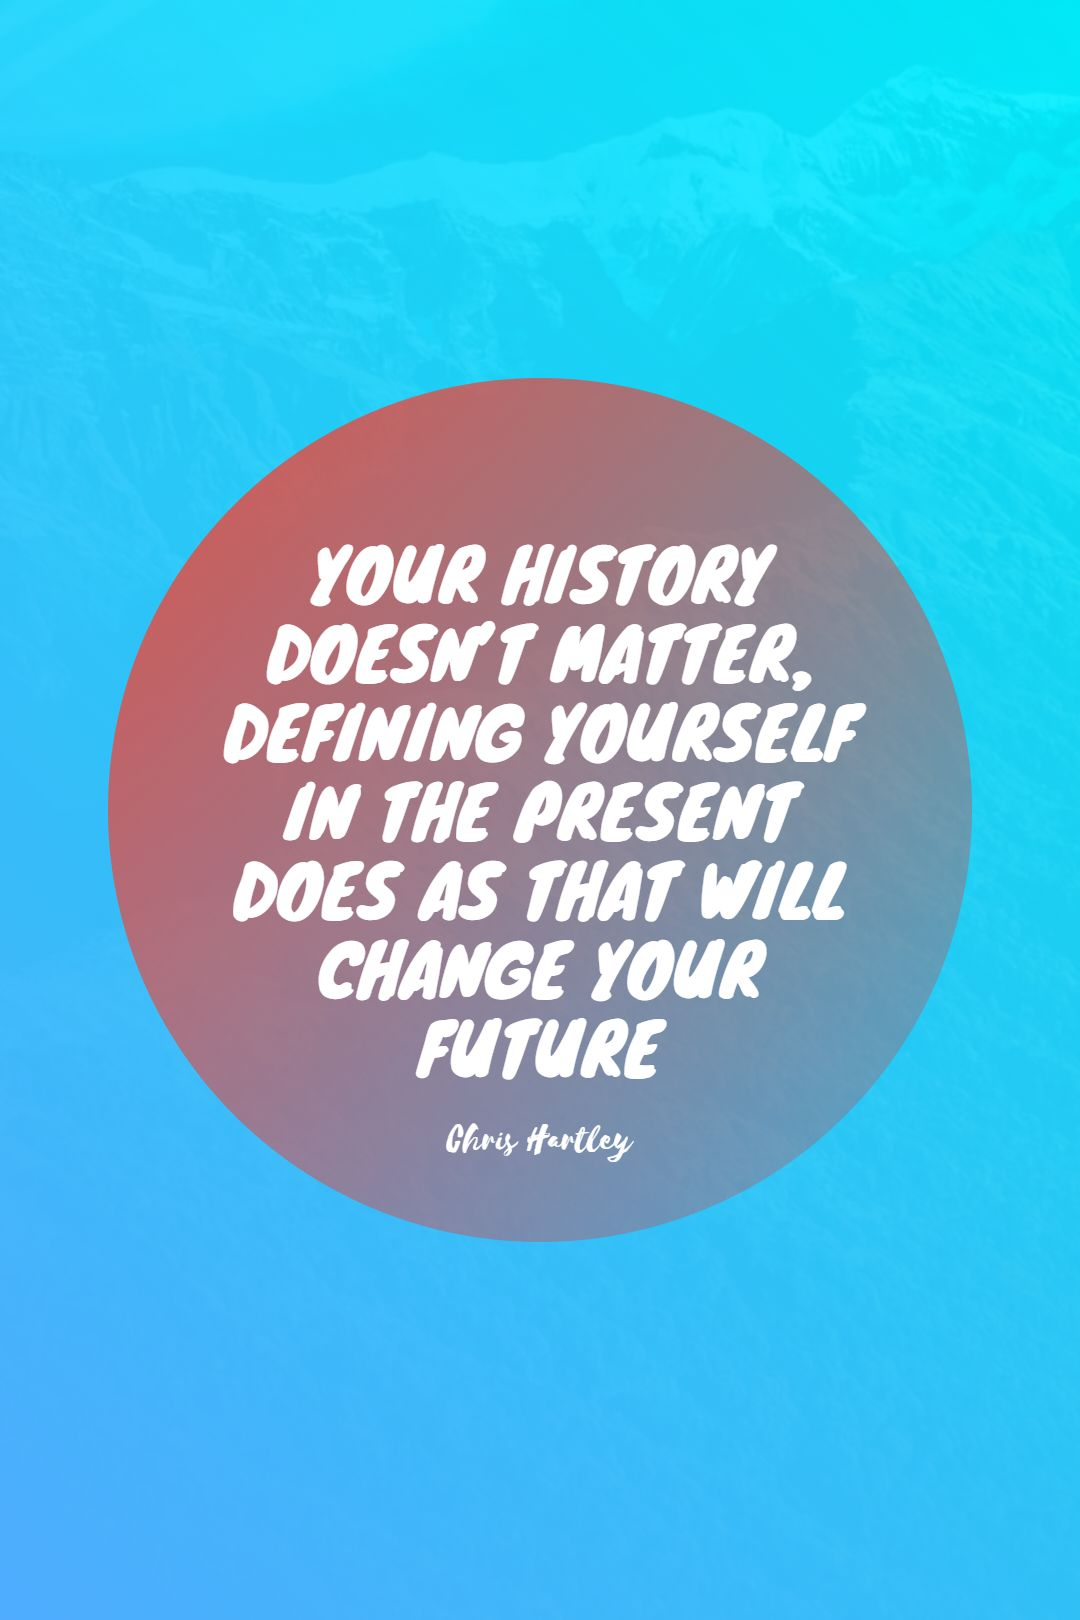 Quotes image of Your history doesn't matter, defining yourself in the present does as that will change your future